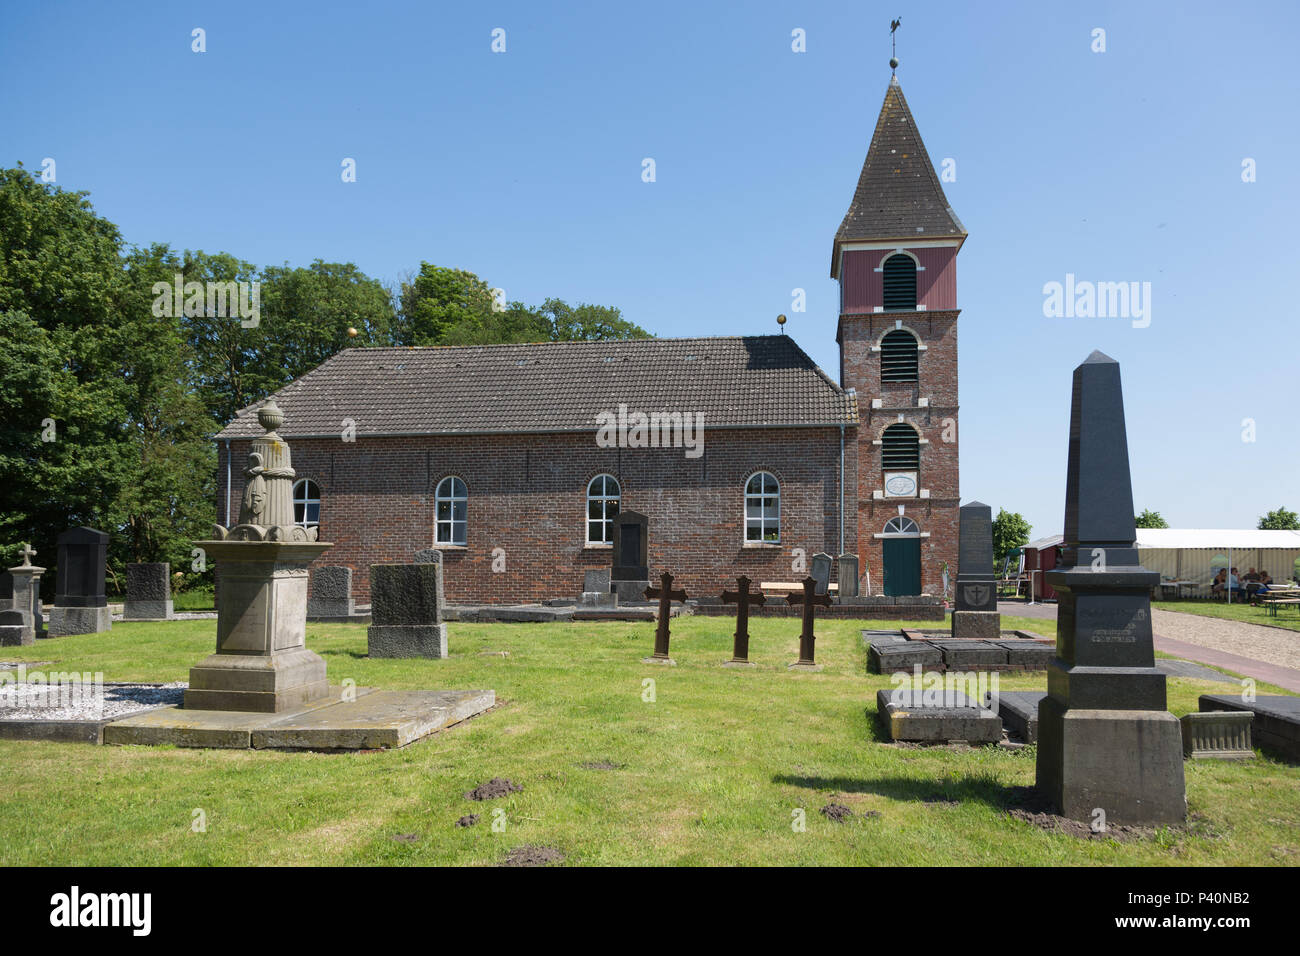 Church Landschaftspolder, Bunde, Rheiderland, Ostfriesland, Germany. - Stock Image